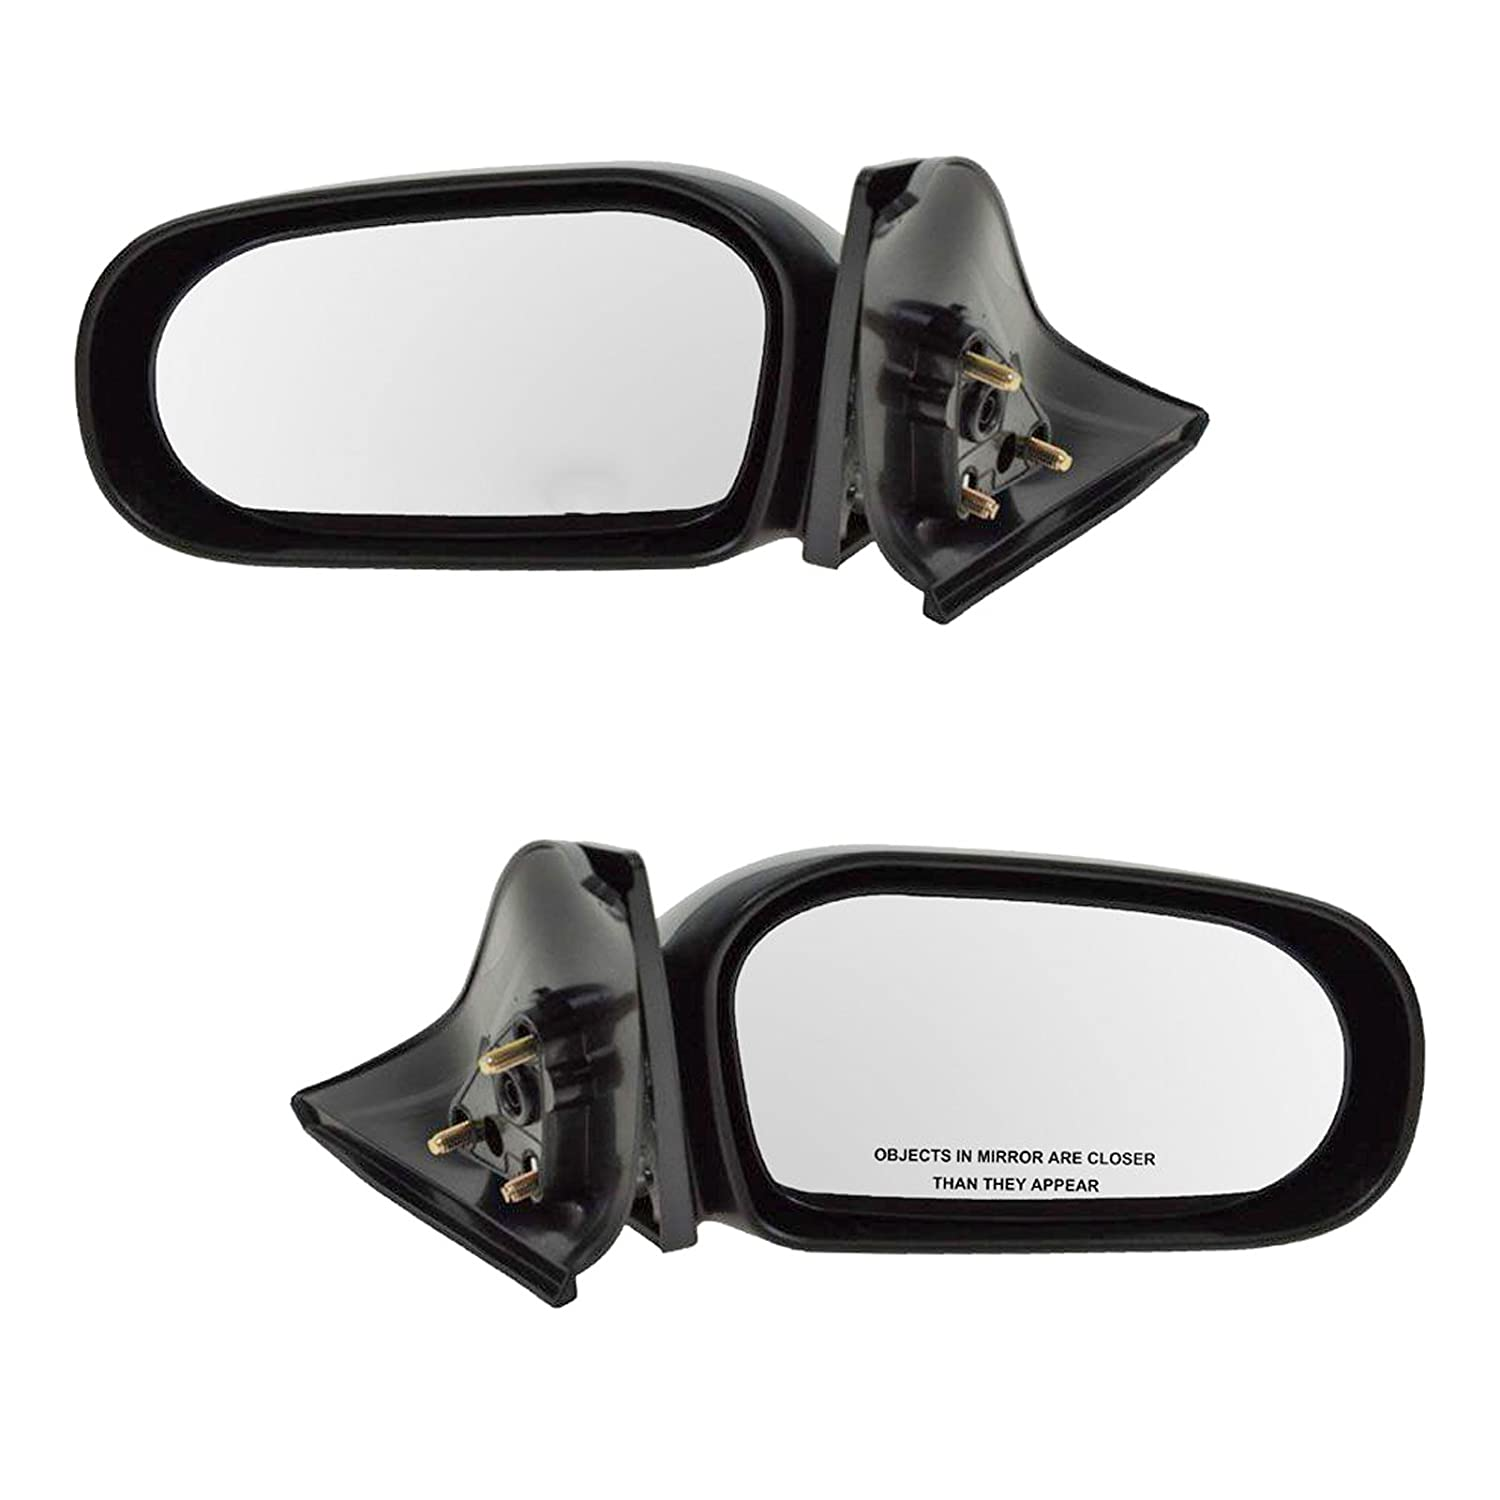 00-07 Monte Carlo Power Heat Non-Fold Rear View Mirror Left Right Side SET PAIR